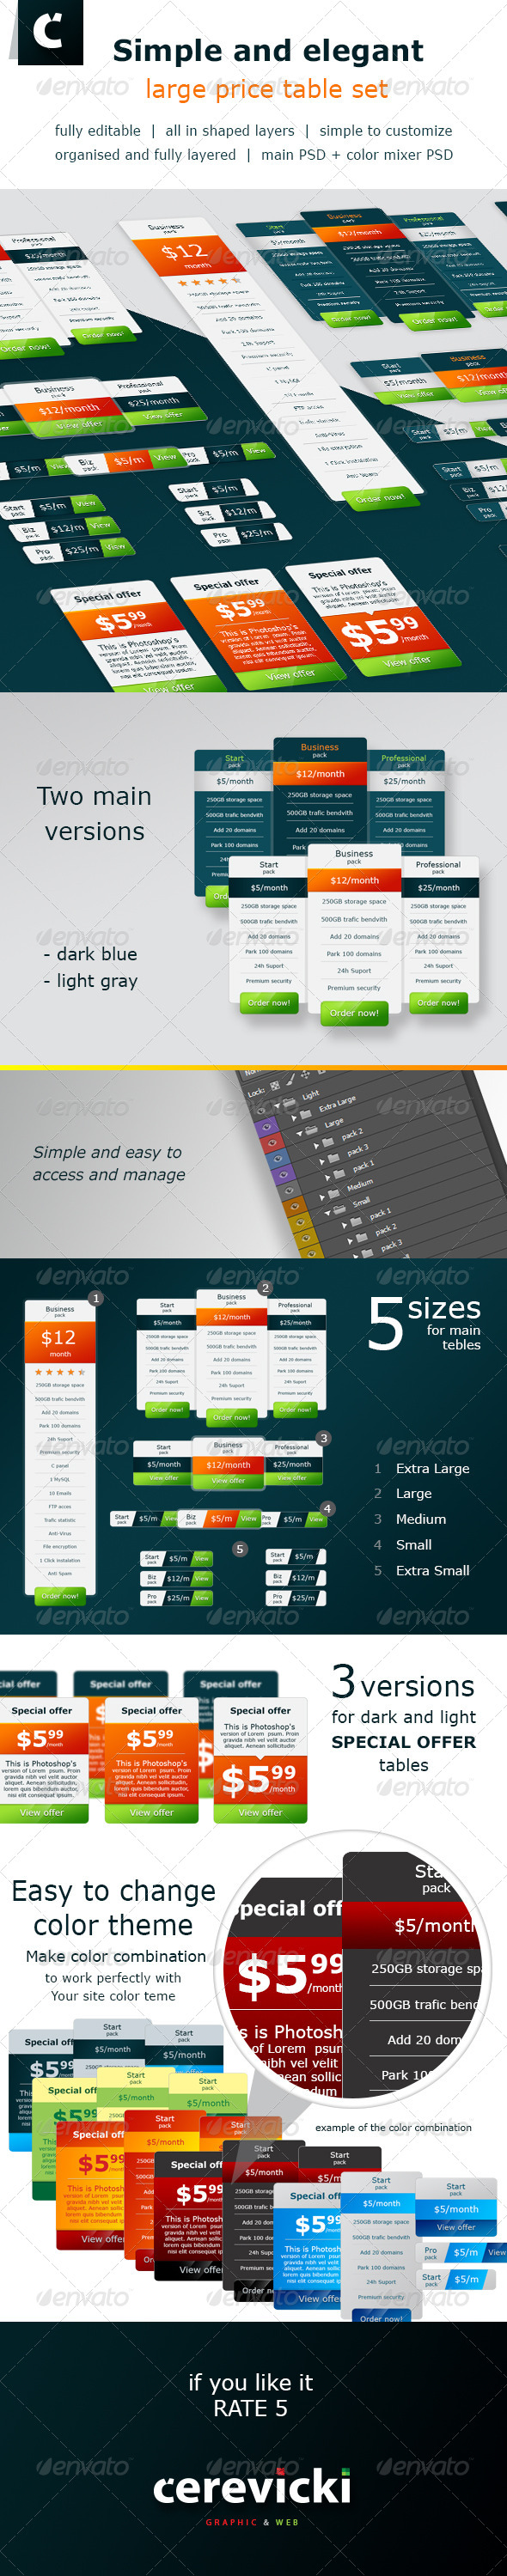 GraphicRiver Simple and elegant large price table set 6694637